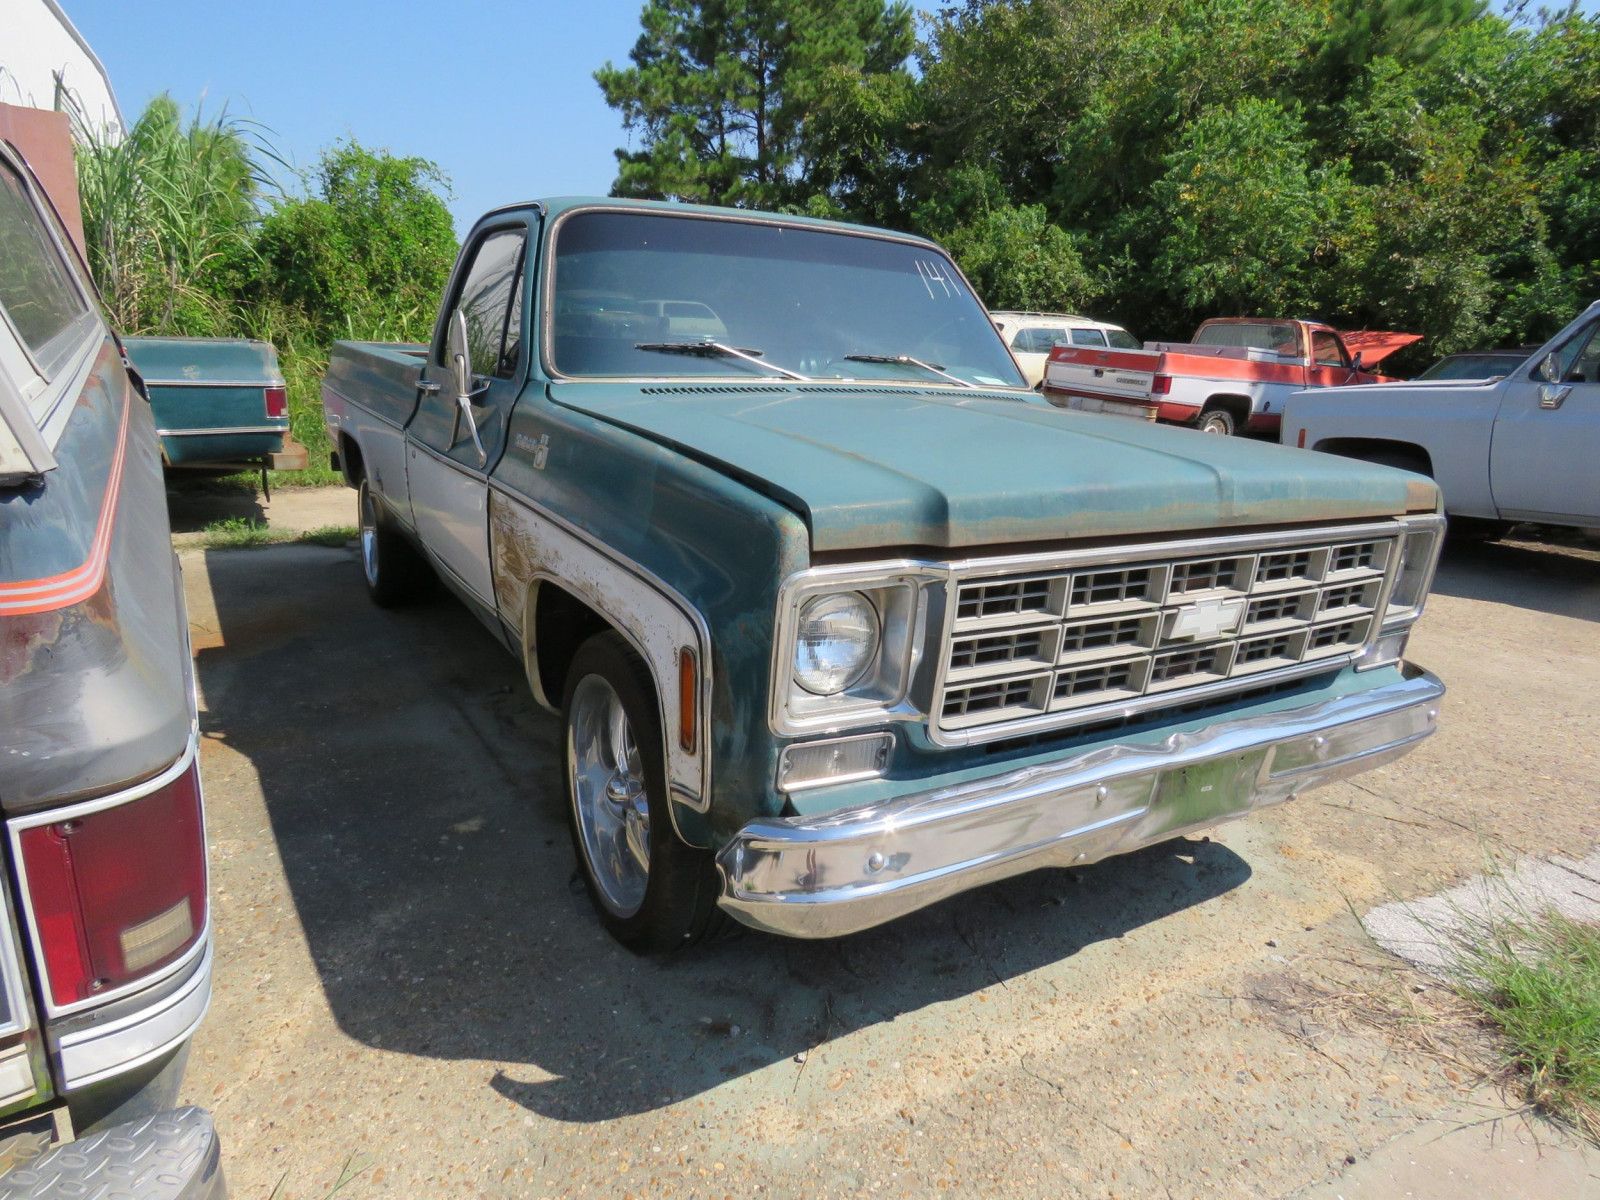 1979 Chevrolet Big 10 1/2 ton Pickup - Image 3